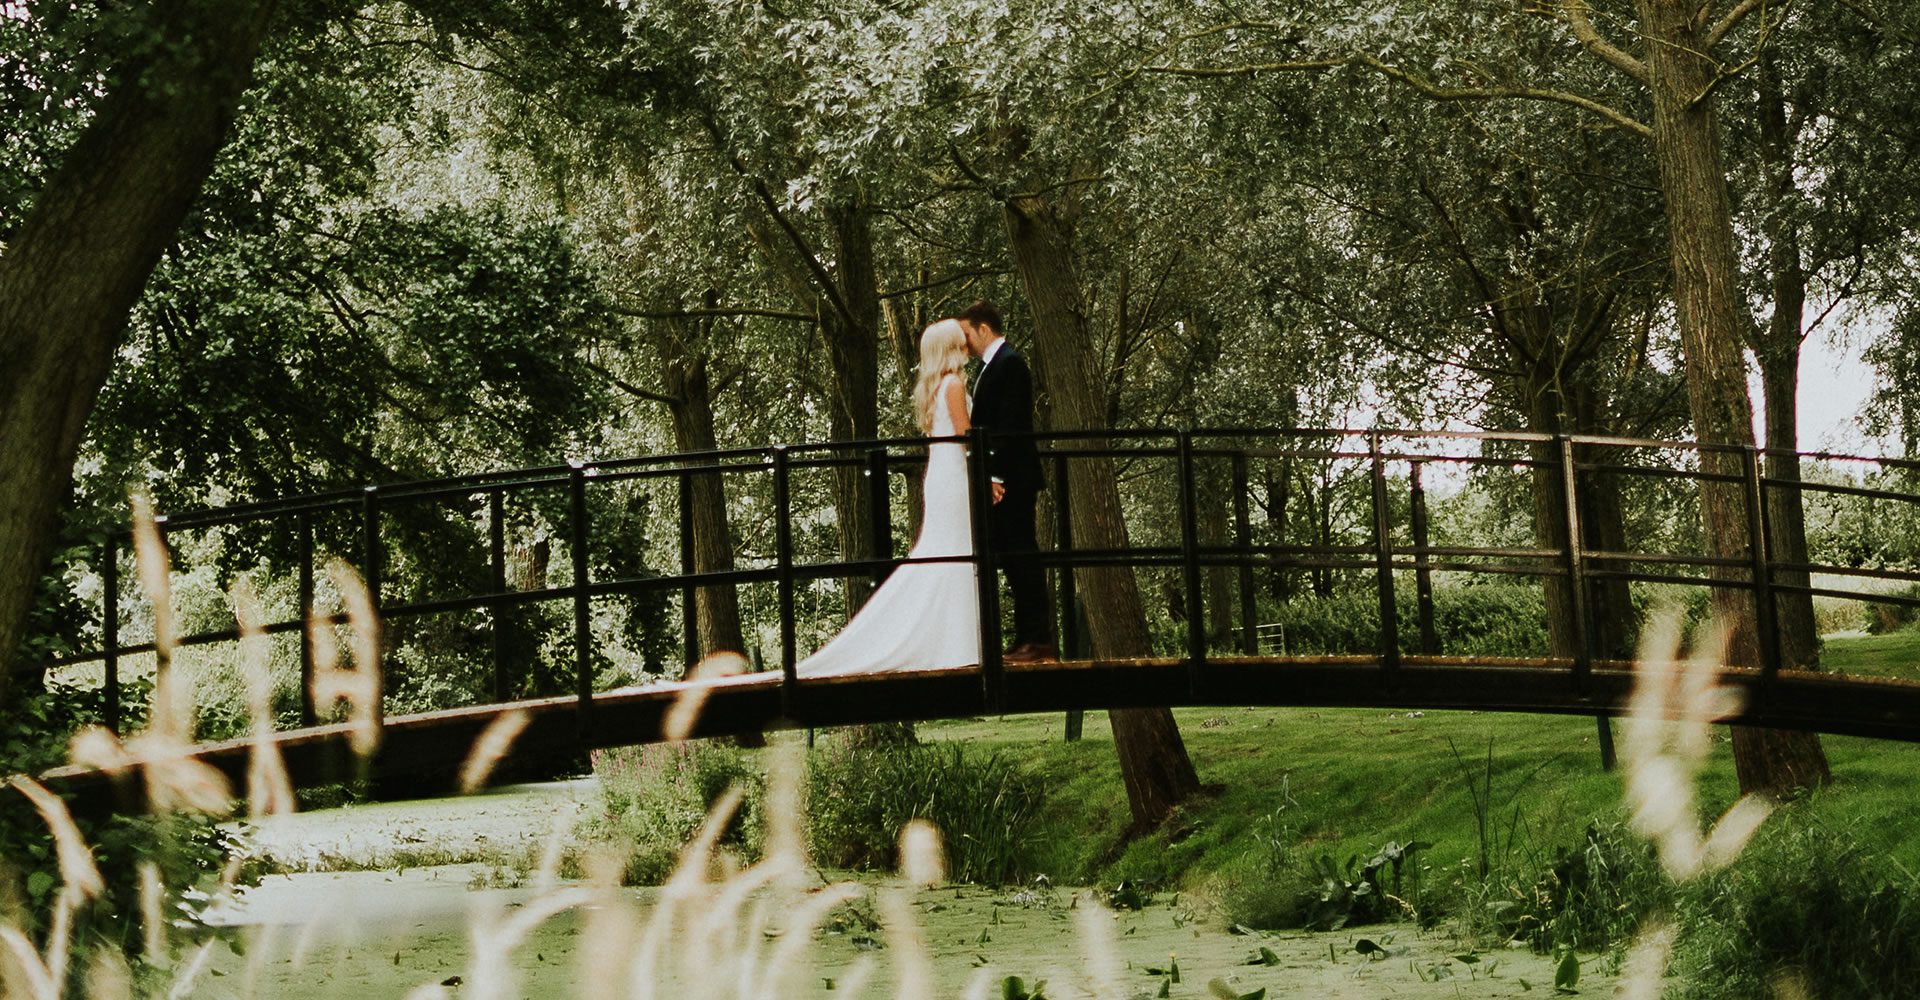 Romantic bridge at Easton Grange wedding venue